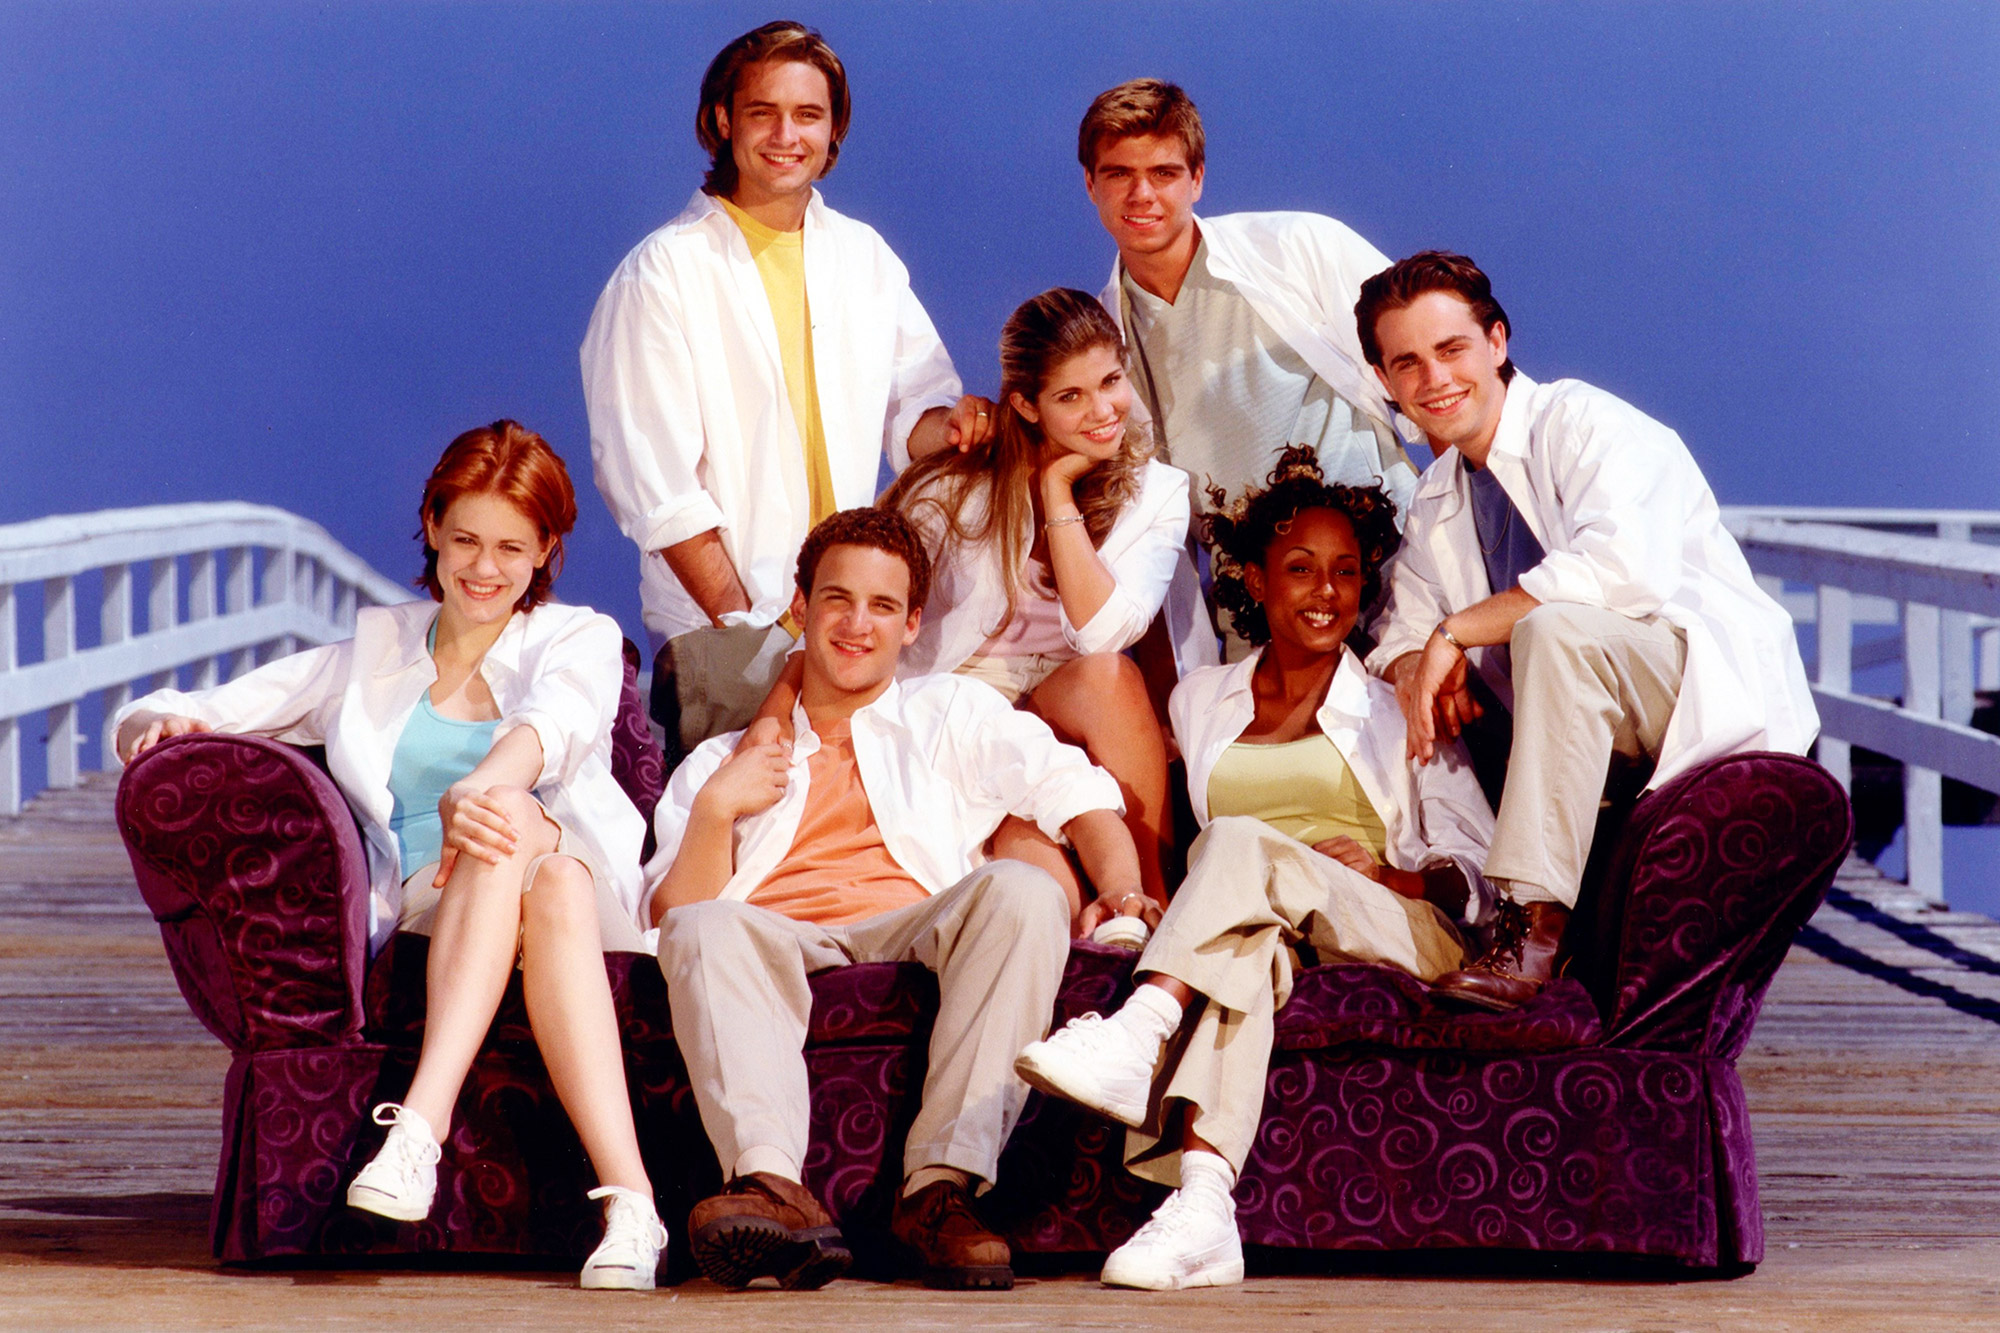 Cast of Boy Meets World in 1998